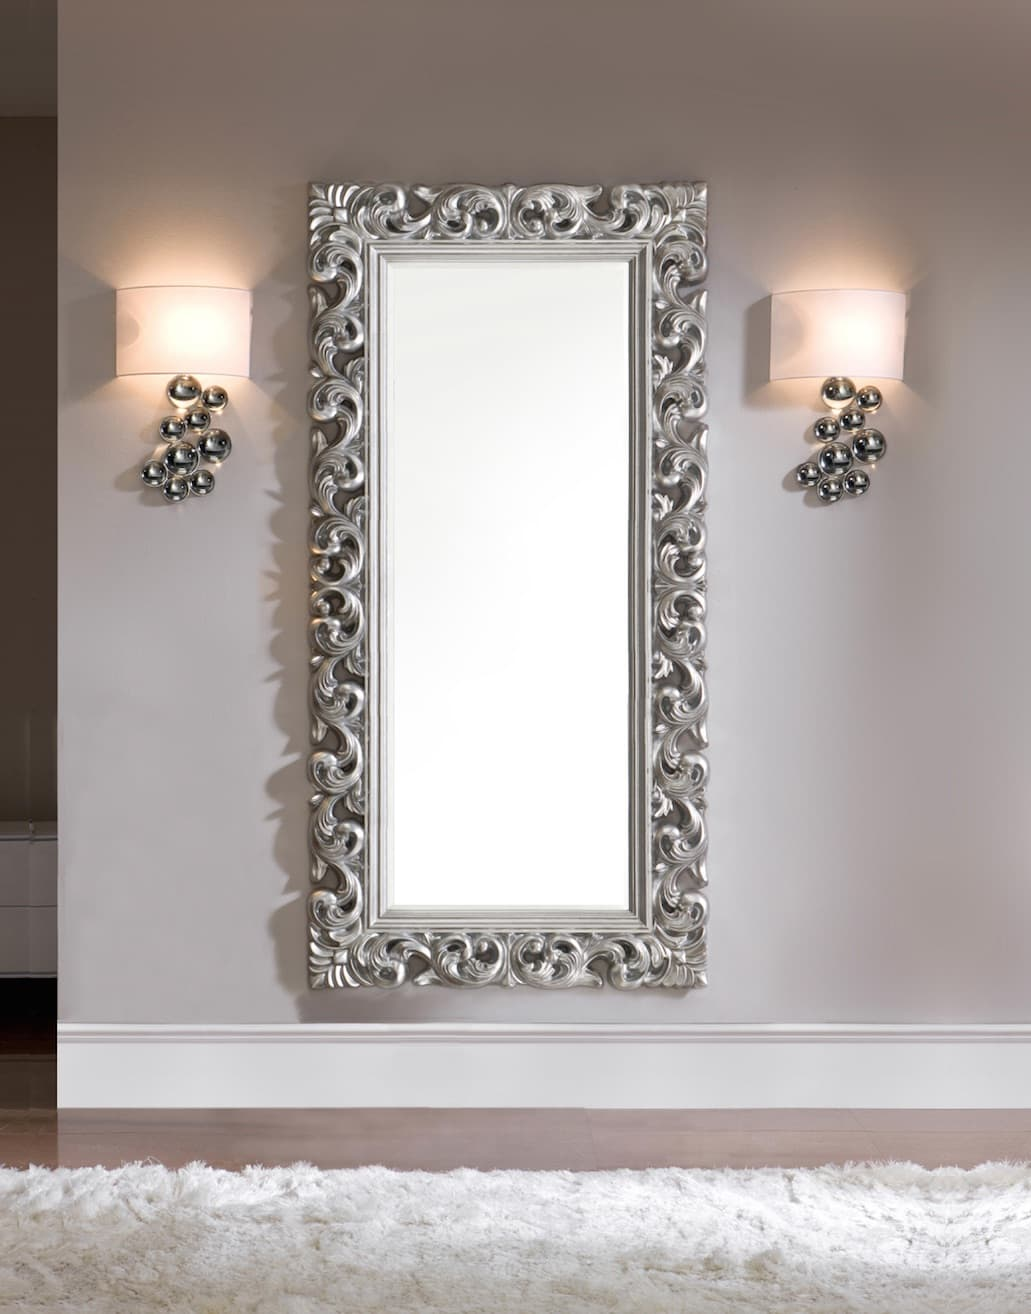 luminaire et d co miroir roma 1 grand miroir antique argent 190x80. Black Bedroom Furniture Sets. Home Design Ideas